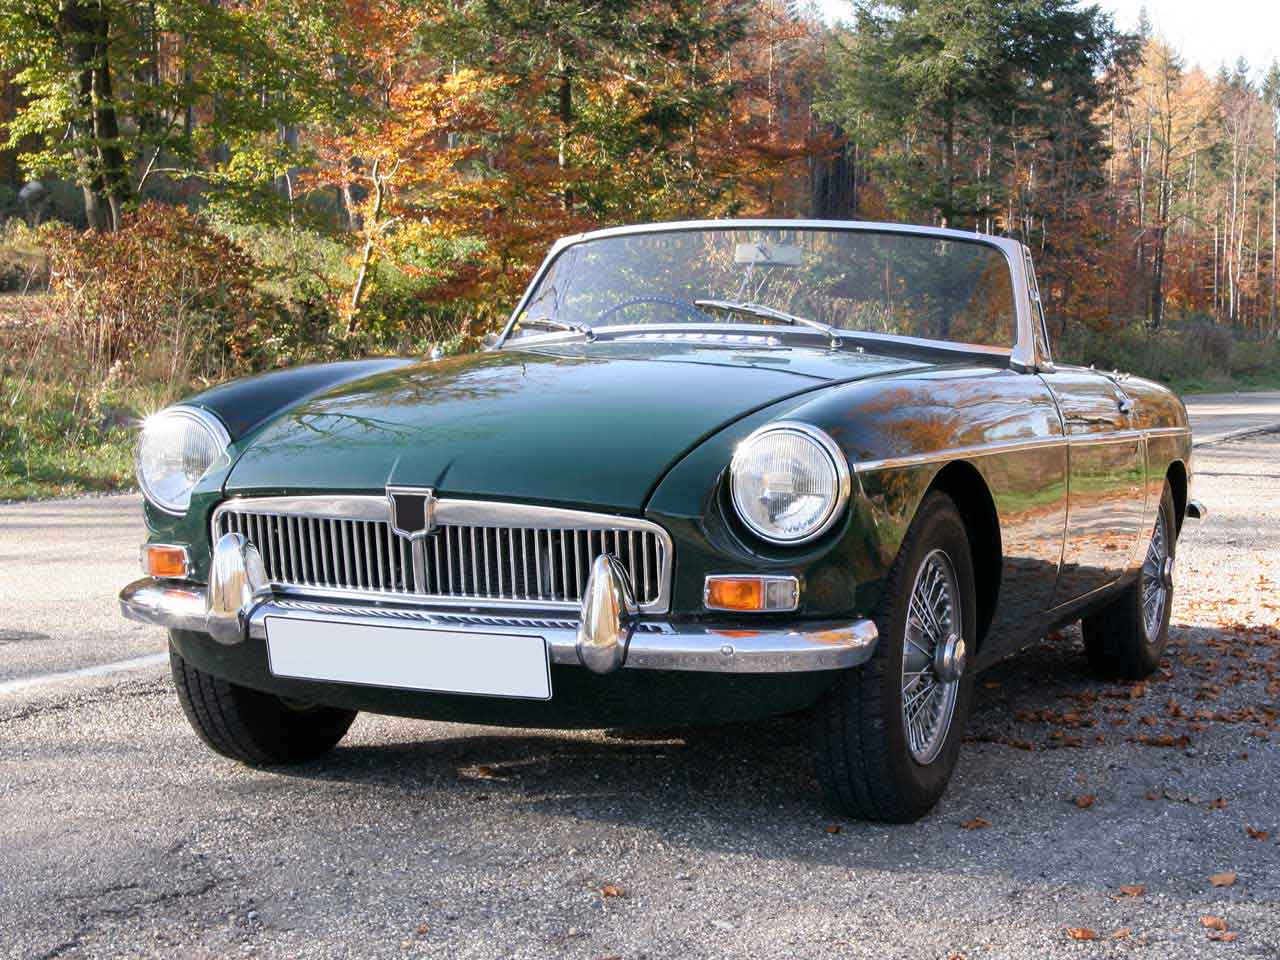 British classic car, the MGB